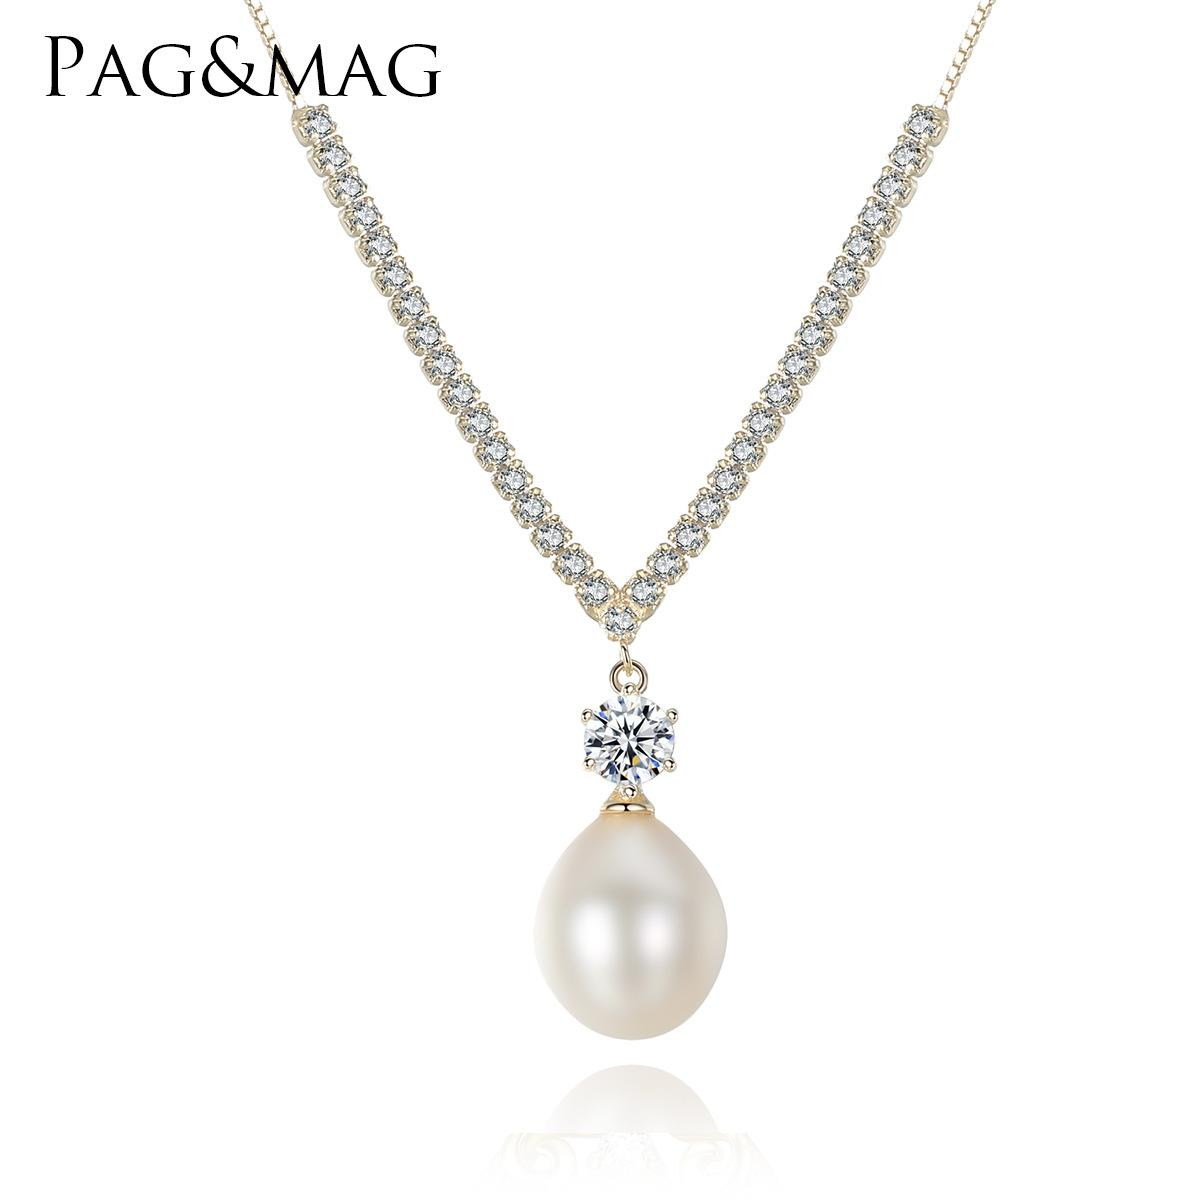 PAG&MAG S925 sterling silver necklace with 3A zircon 10-11mm natural freshwater pearl pendant necklace with exquisite collar bone chain